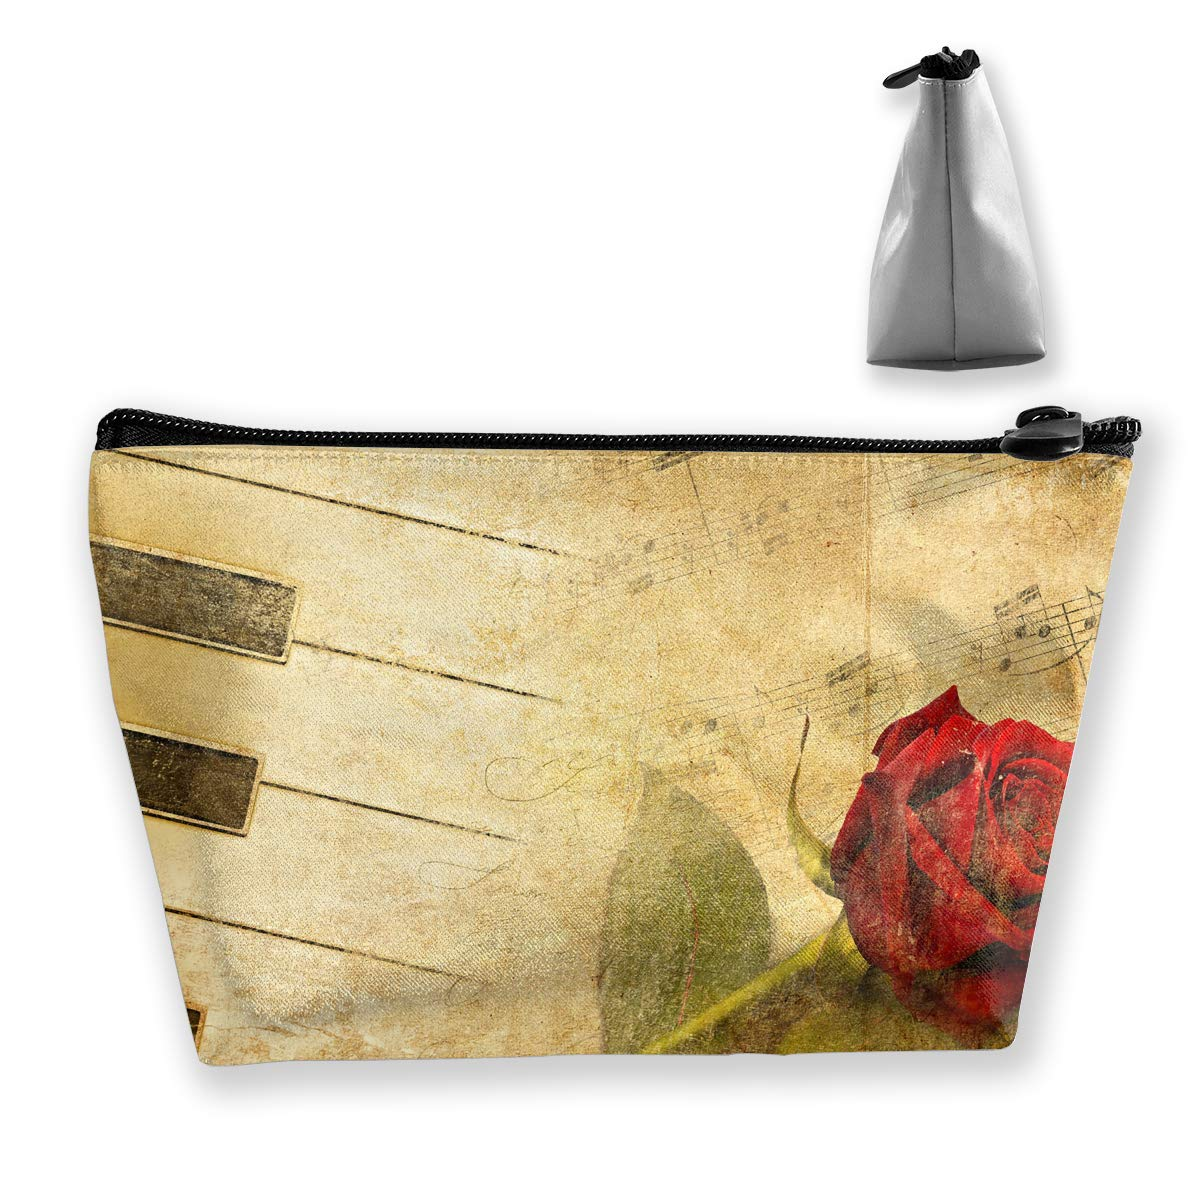 Trapezoid Toiletry Pouch Portable Travel Bag Piano Rose Clutch Bag